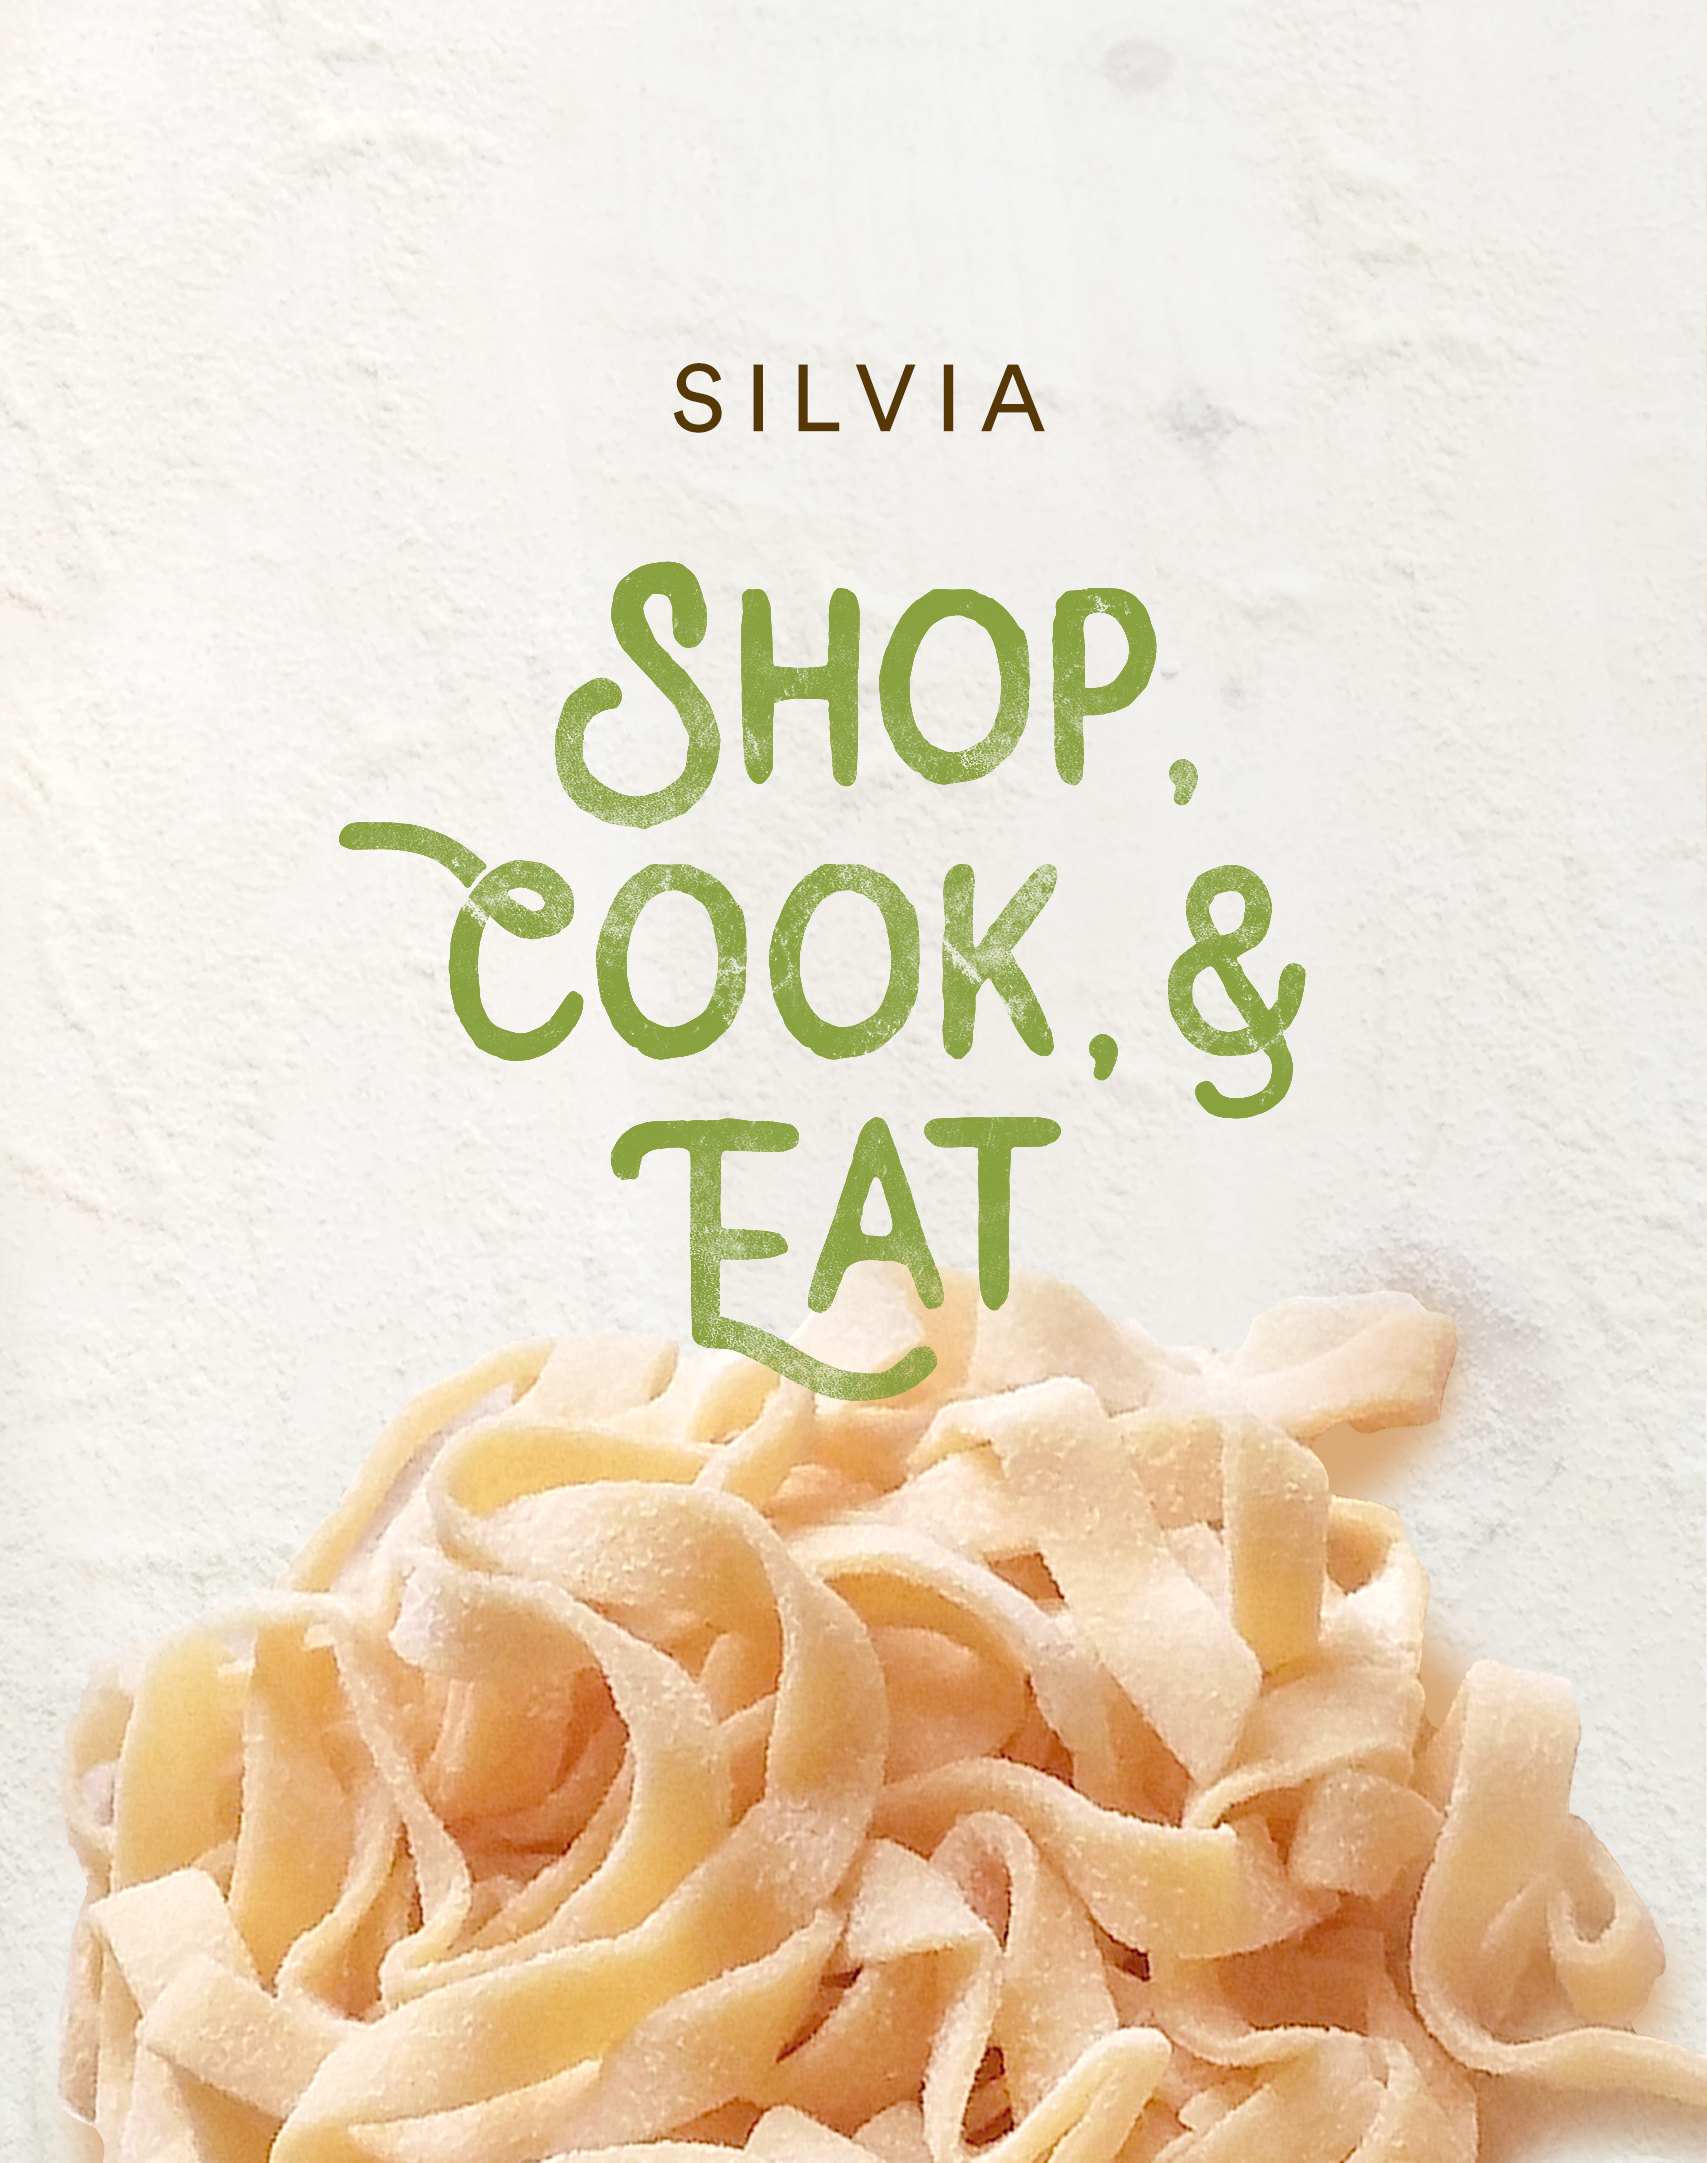 Rome – Silvia, Shop, Cook & Eat 6